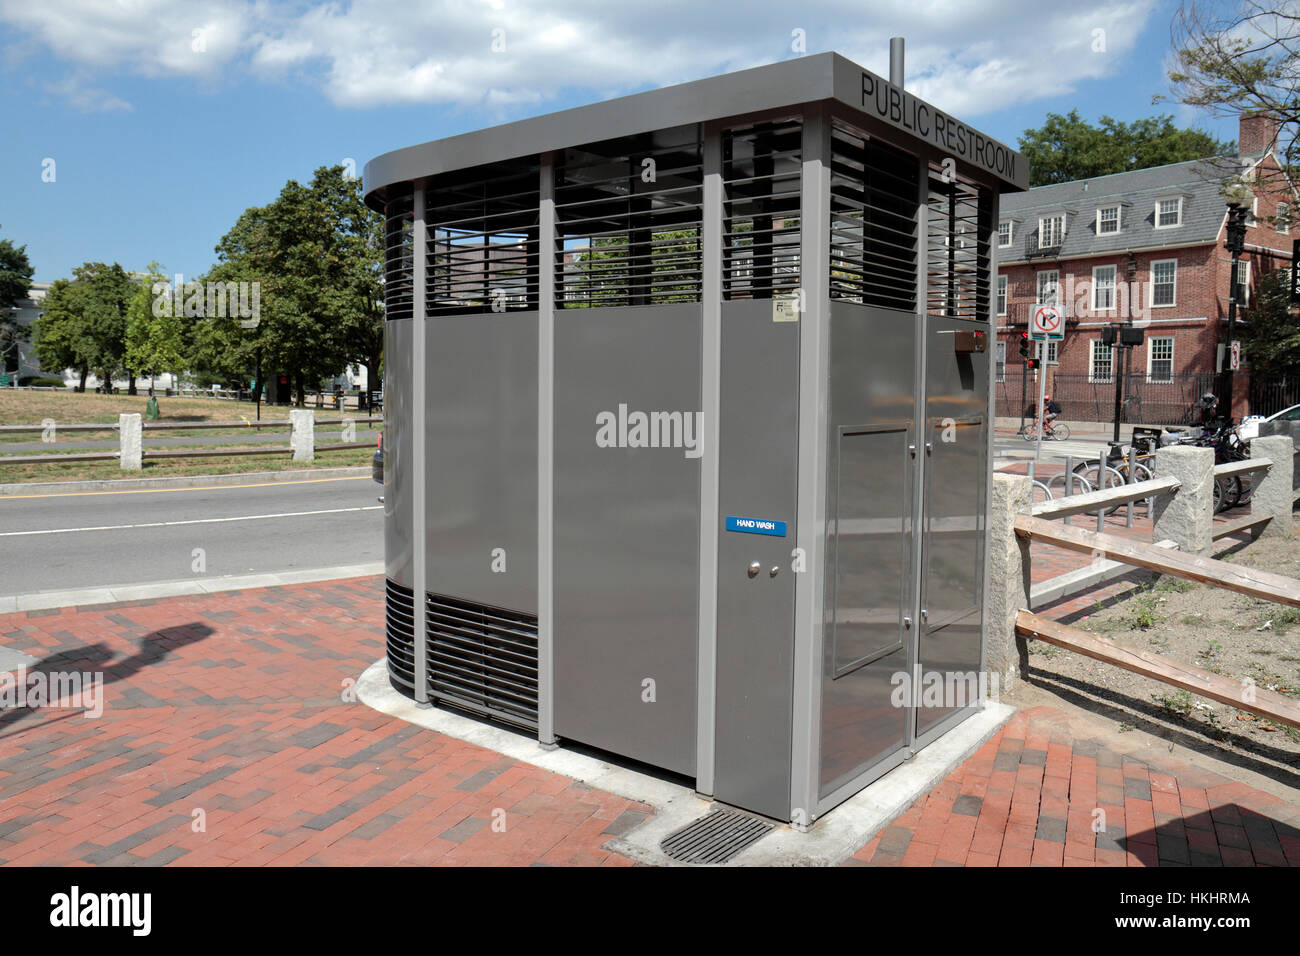 Public Toilet By The Portland Loo Cambridge Common Park In Massachusetts United States